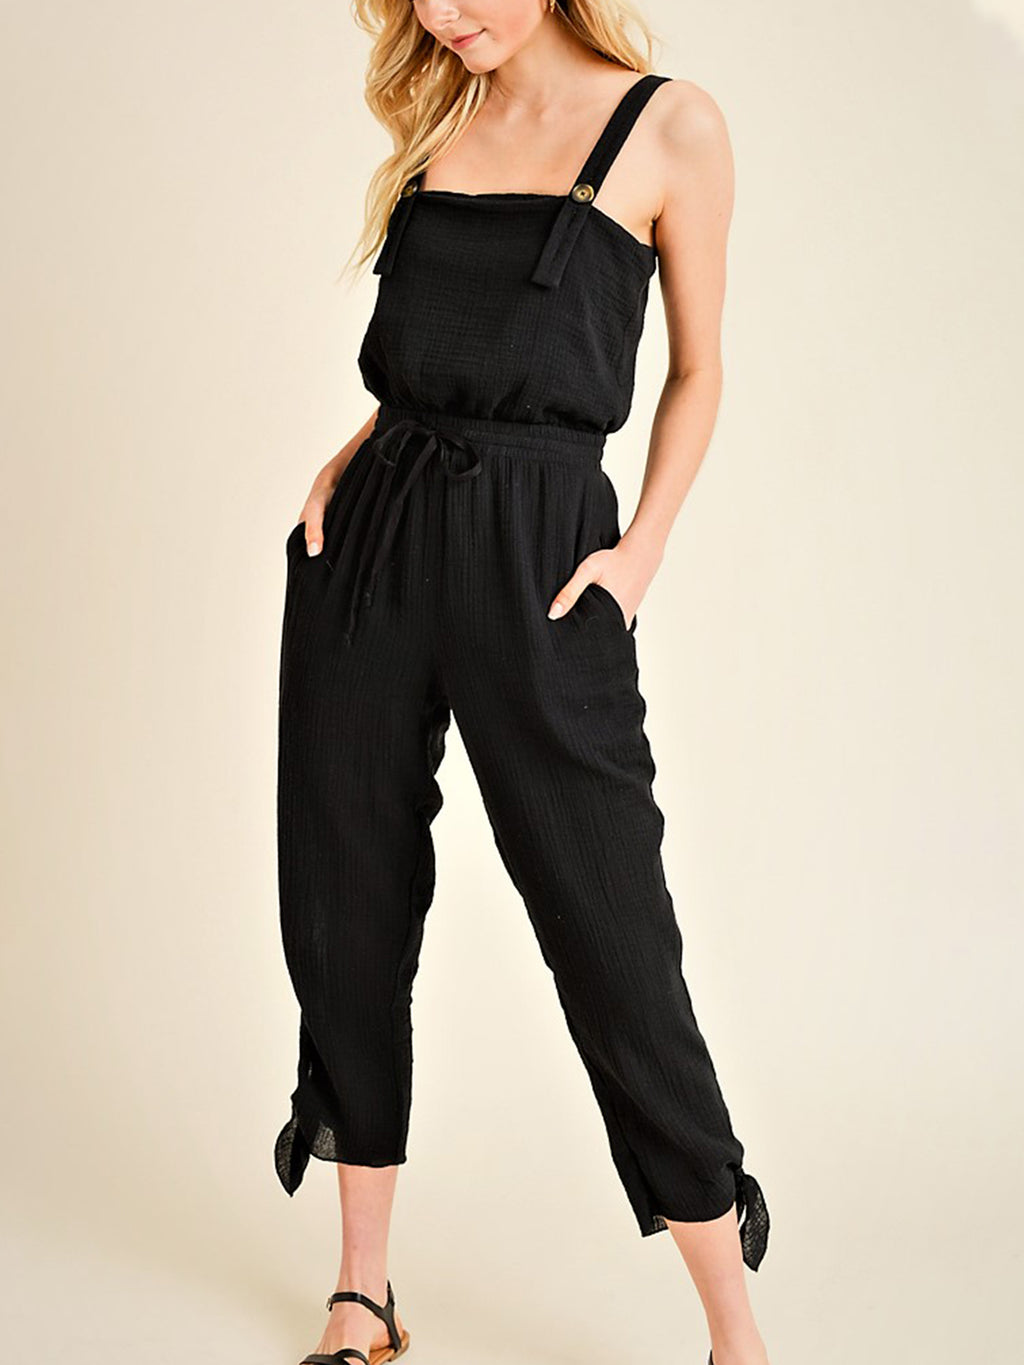 4a6a50e11a Buttoned Up Gauze Jumpsuit - Stitch And Feather